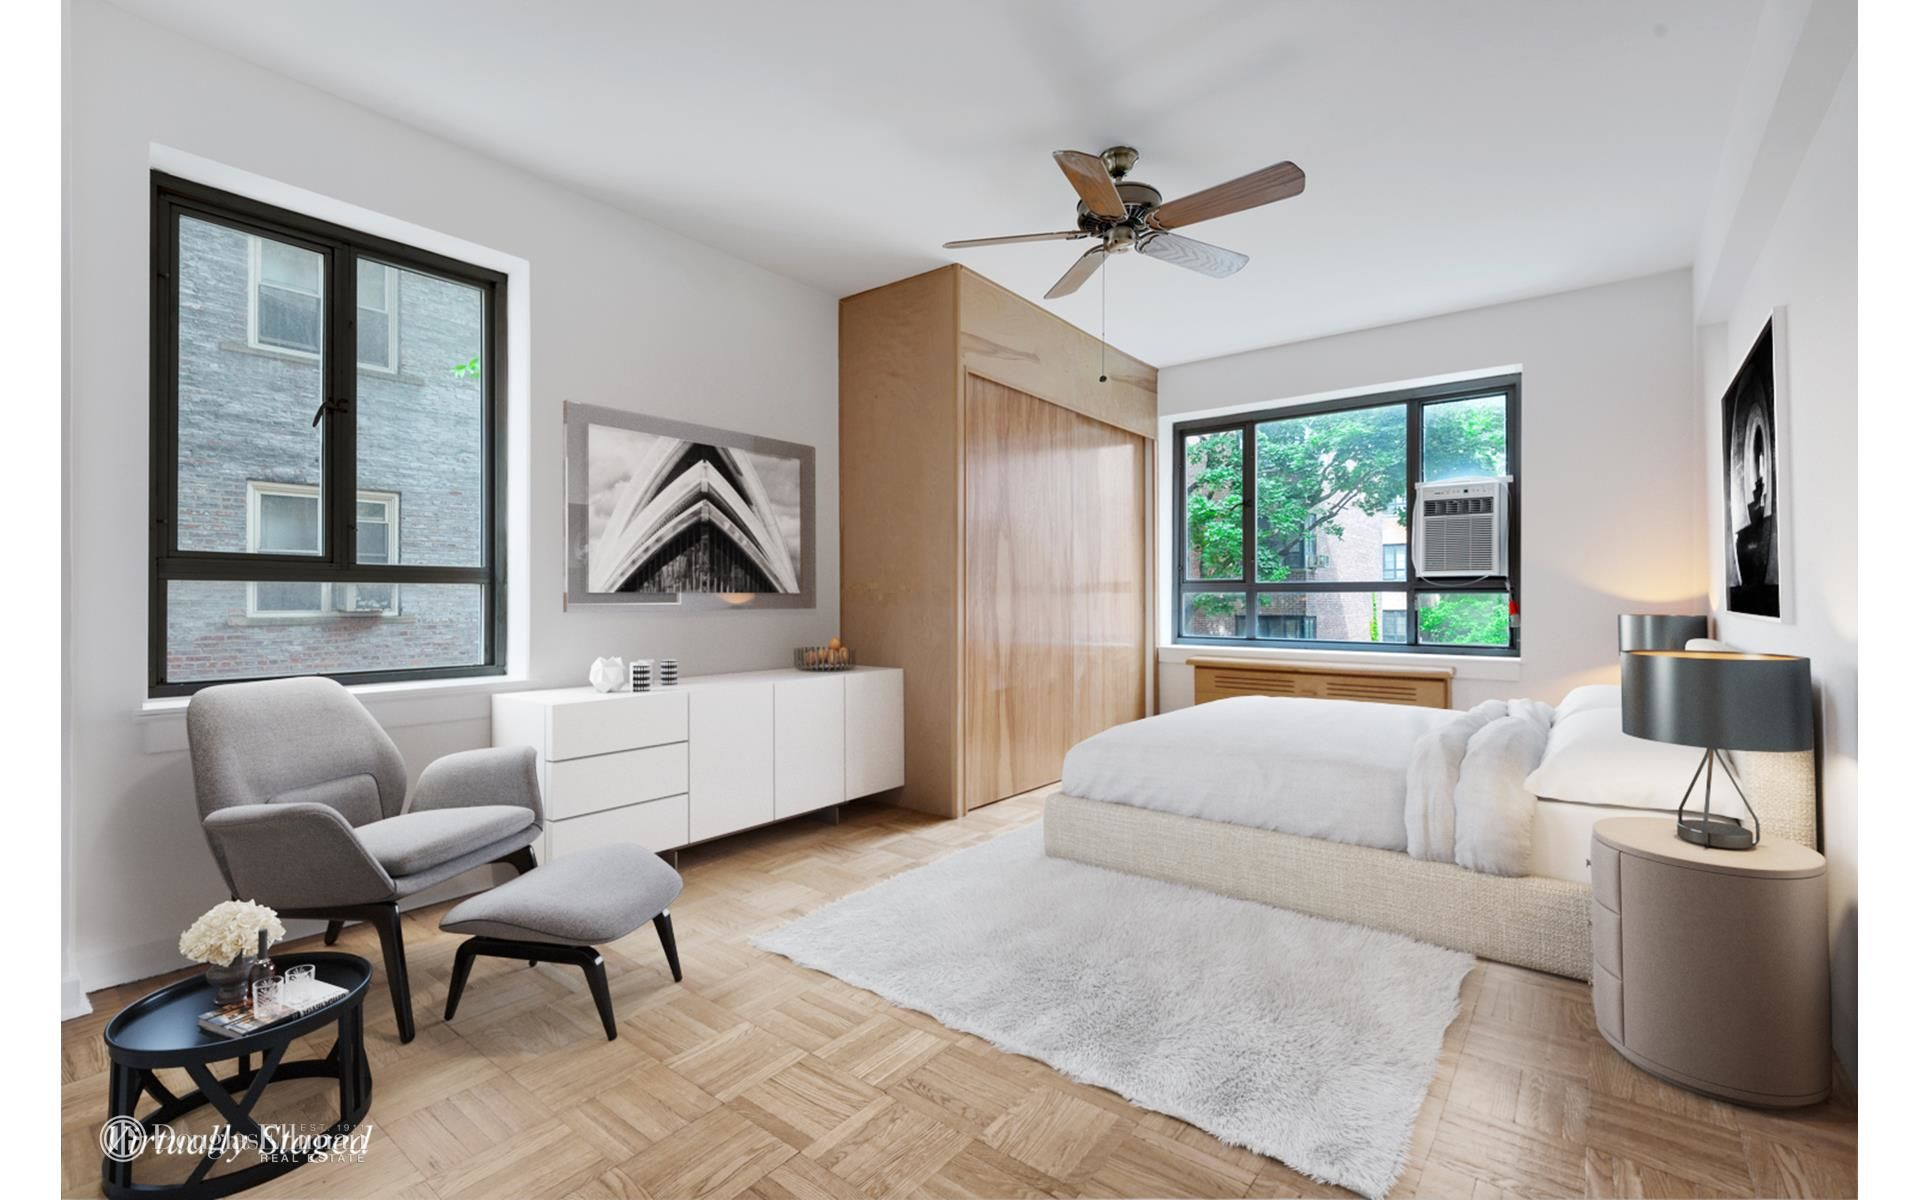 130 8th Ave, APT 2A Photo 2 - ELLIMAN-3787631